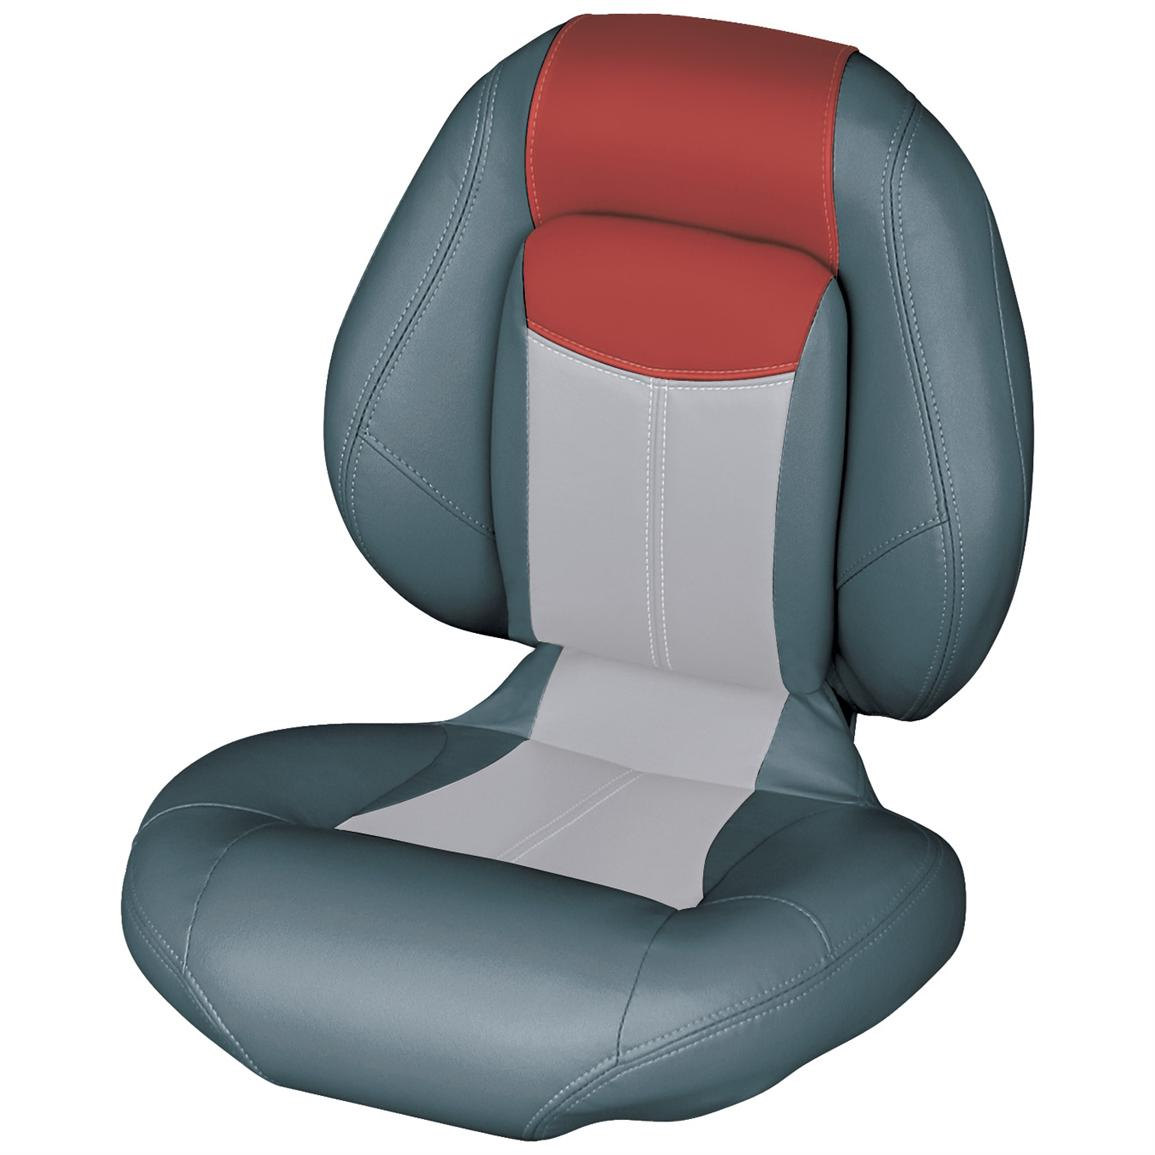 Wise® Blast-Off™ Series Centric 1 Folding Boat Seat, Charcoal / Grey / Red